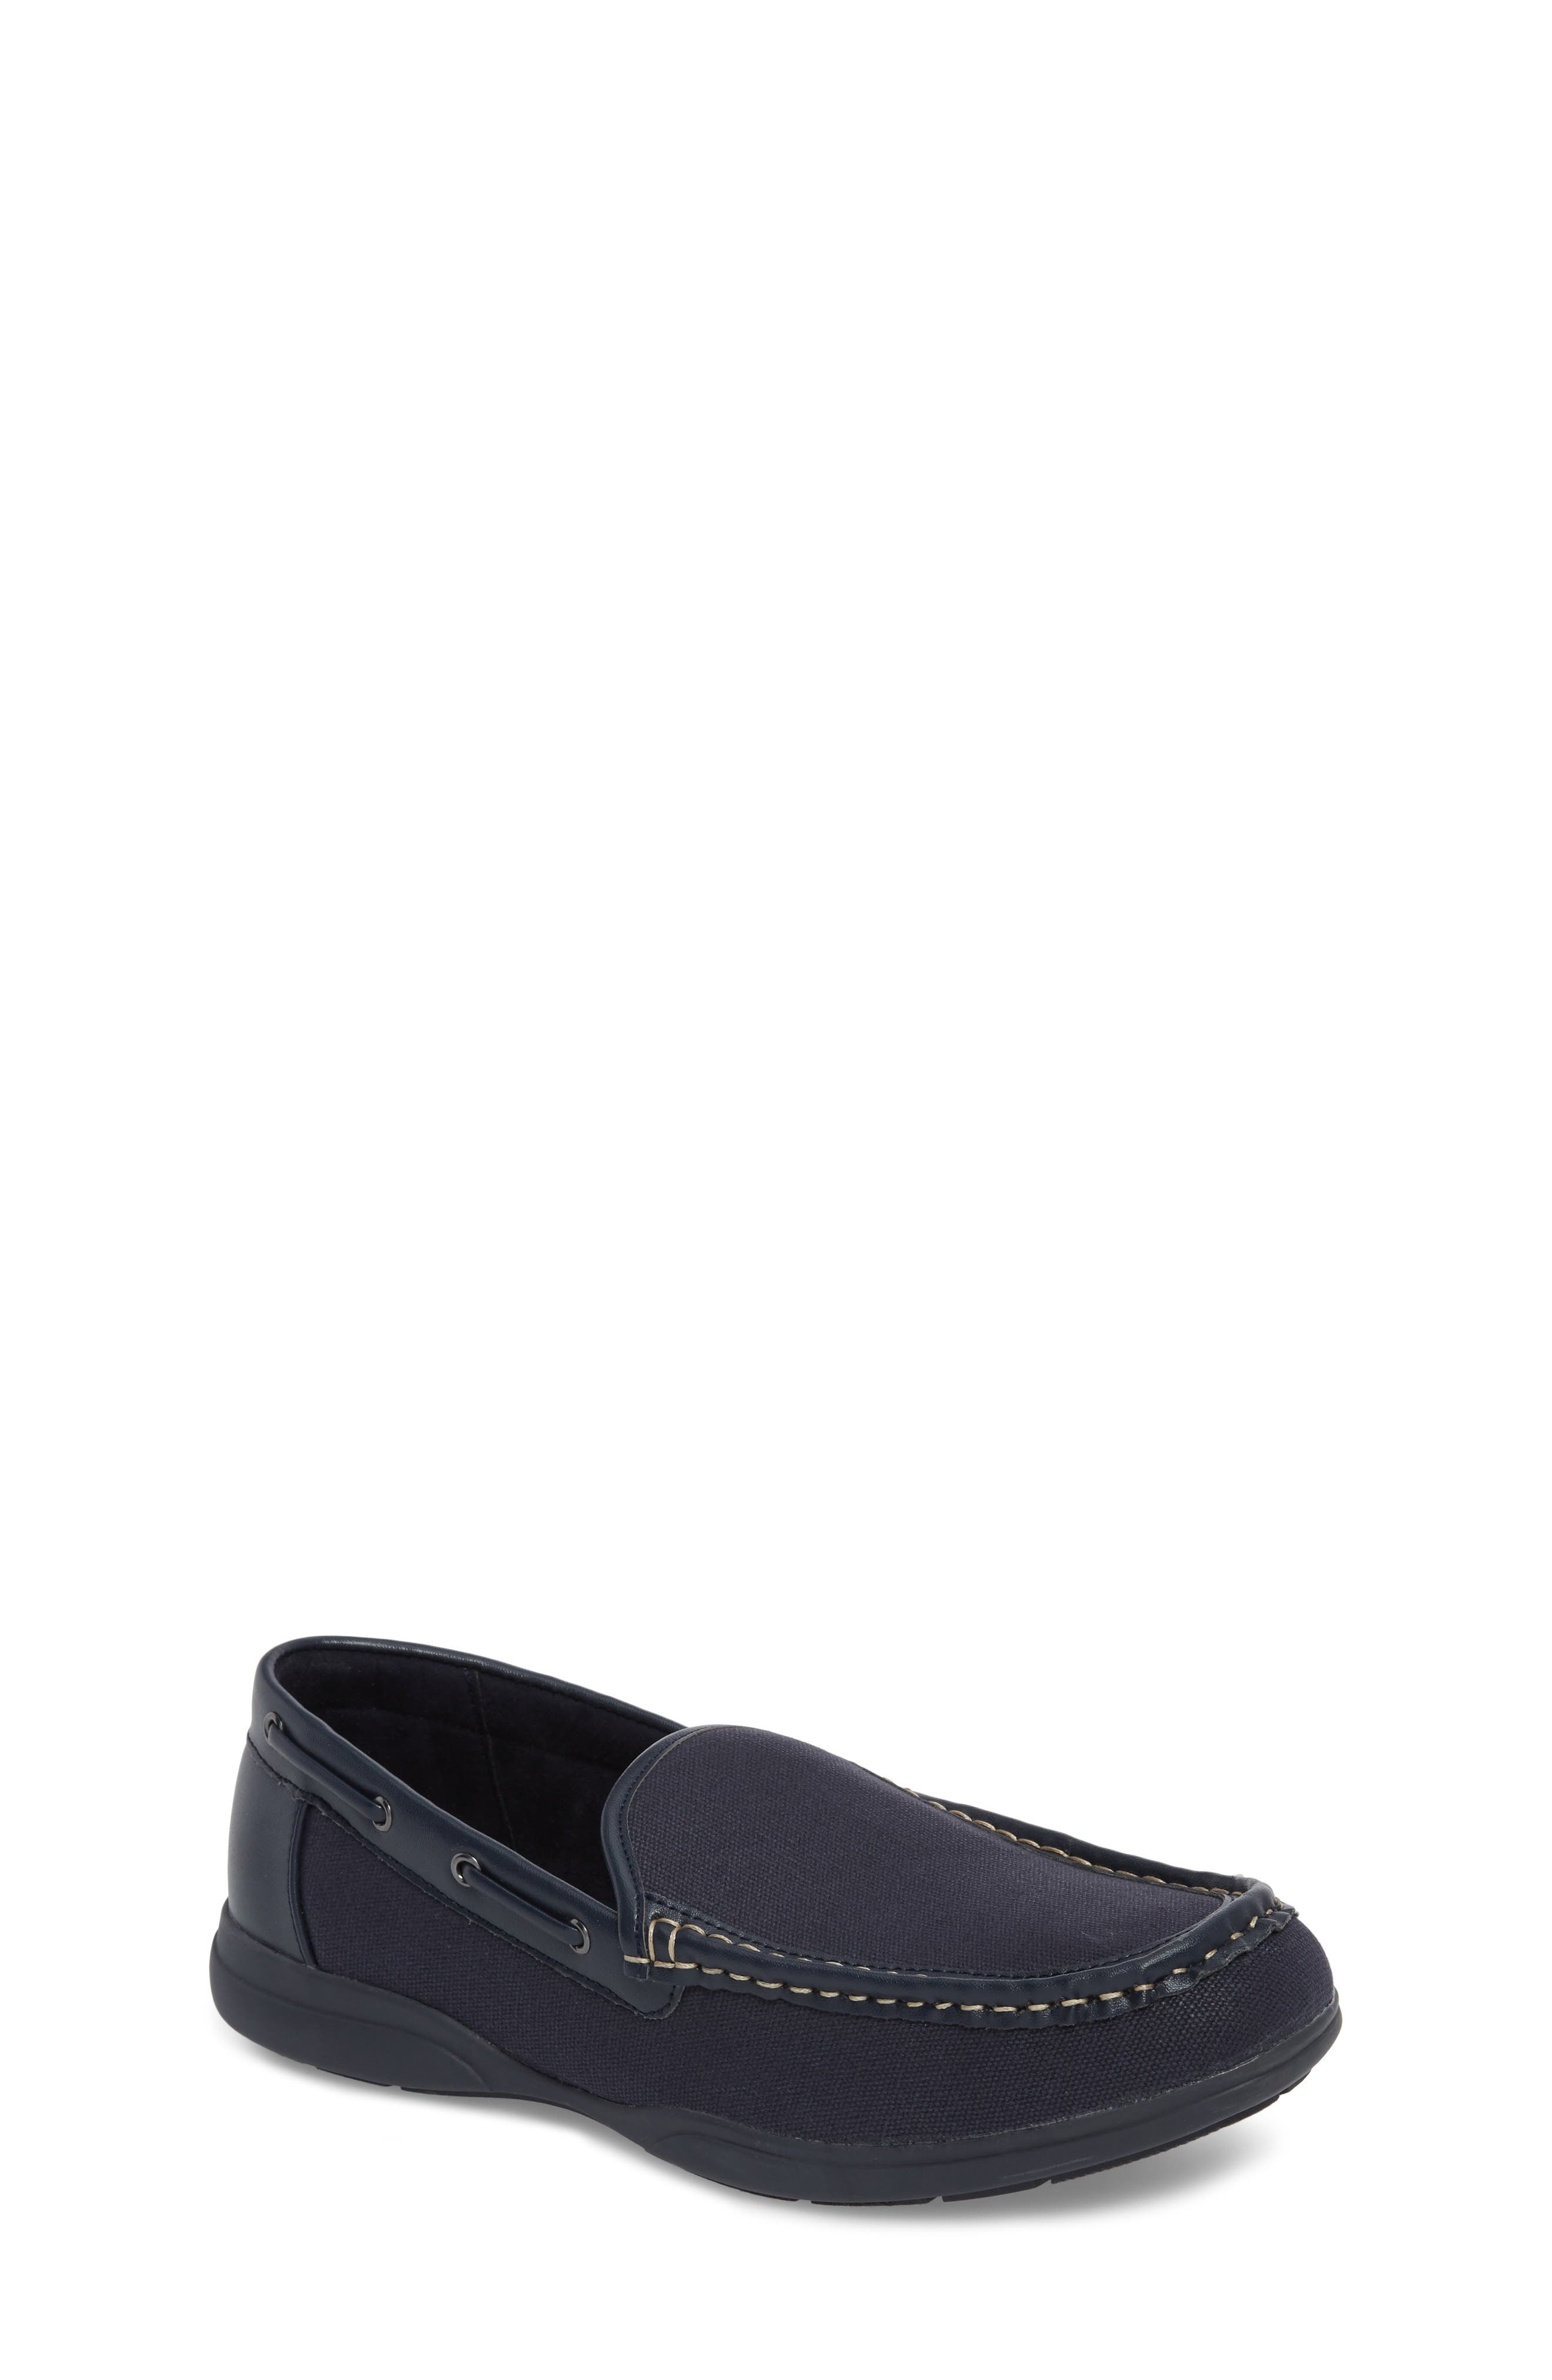 Joe Driving Loafer,                         Main,                         color, 410